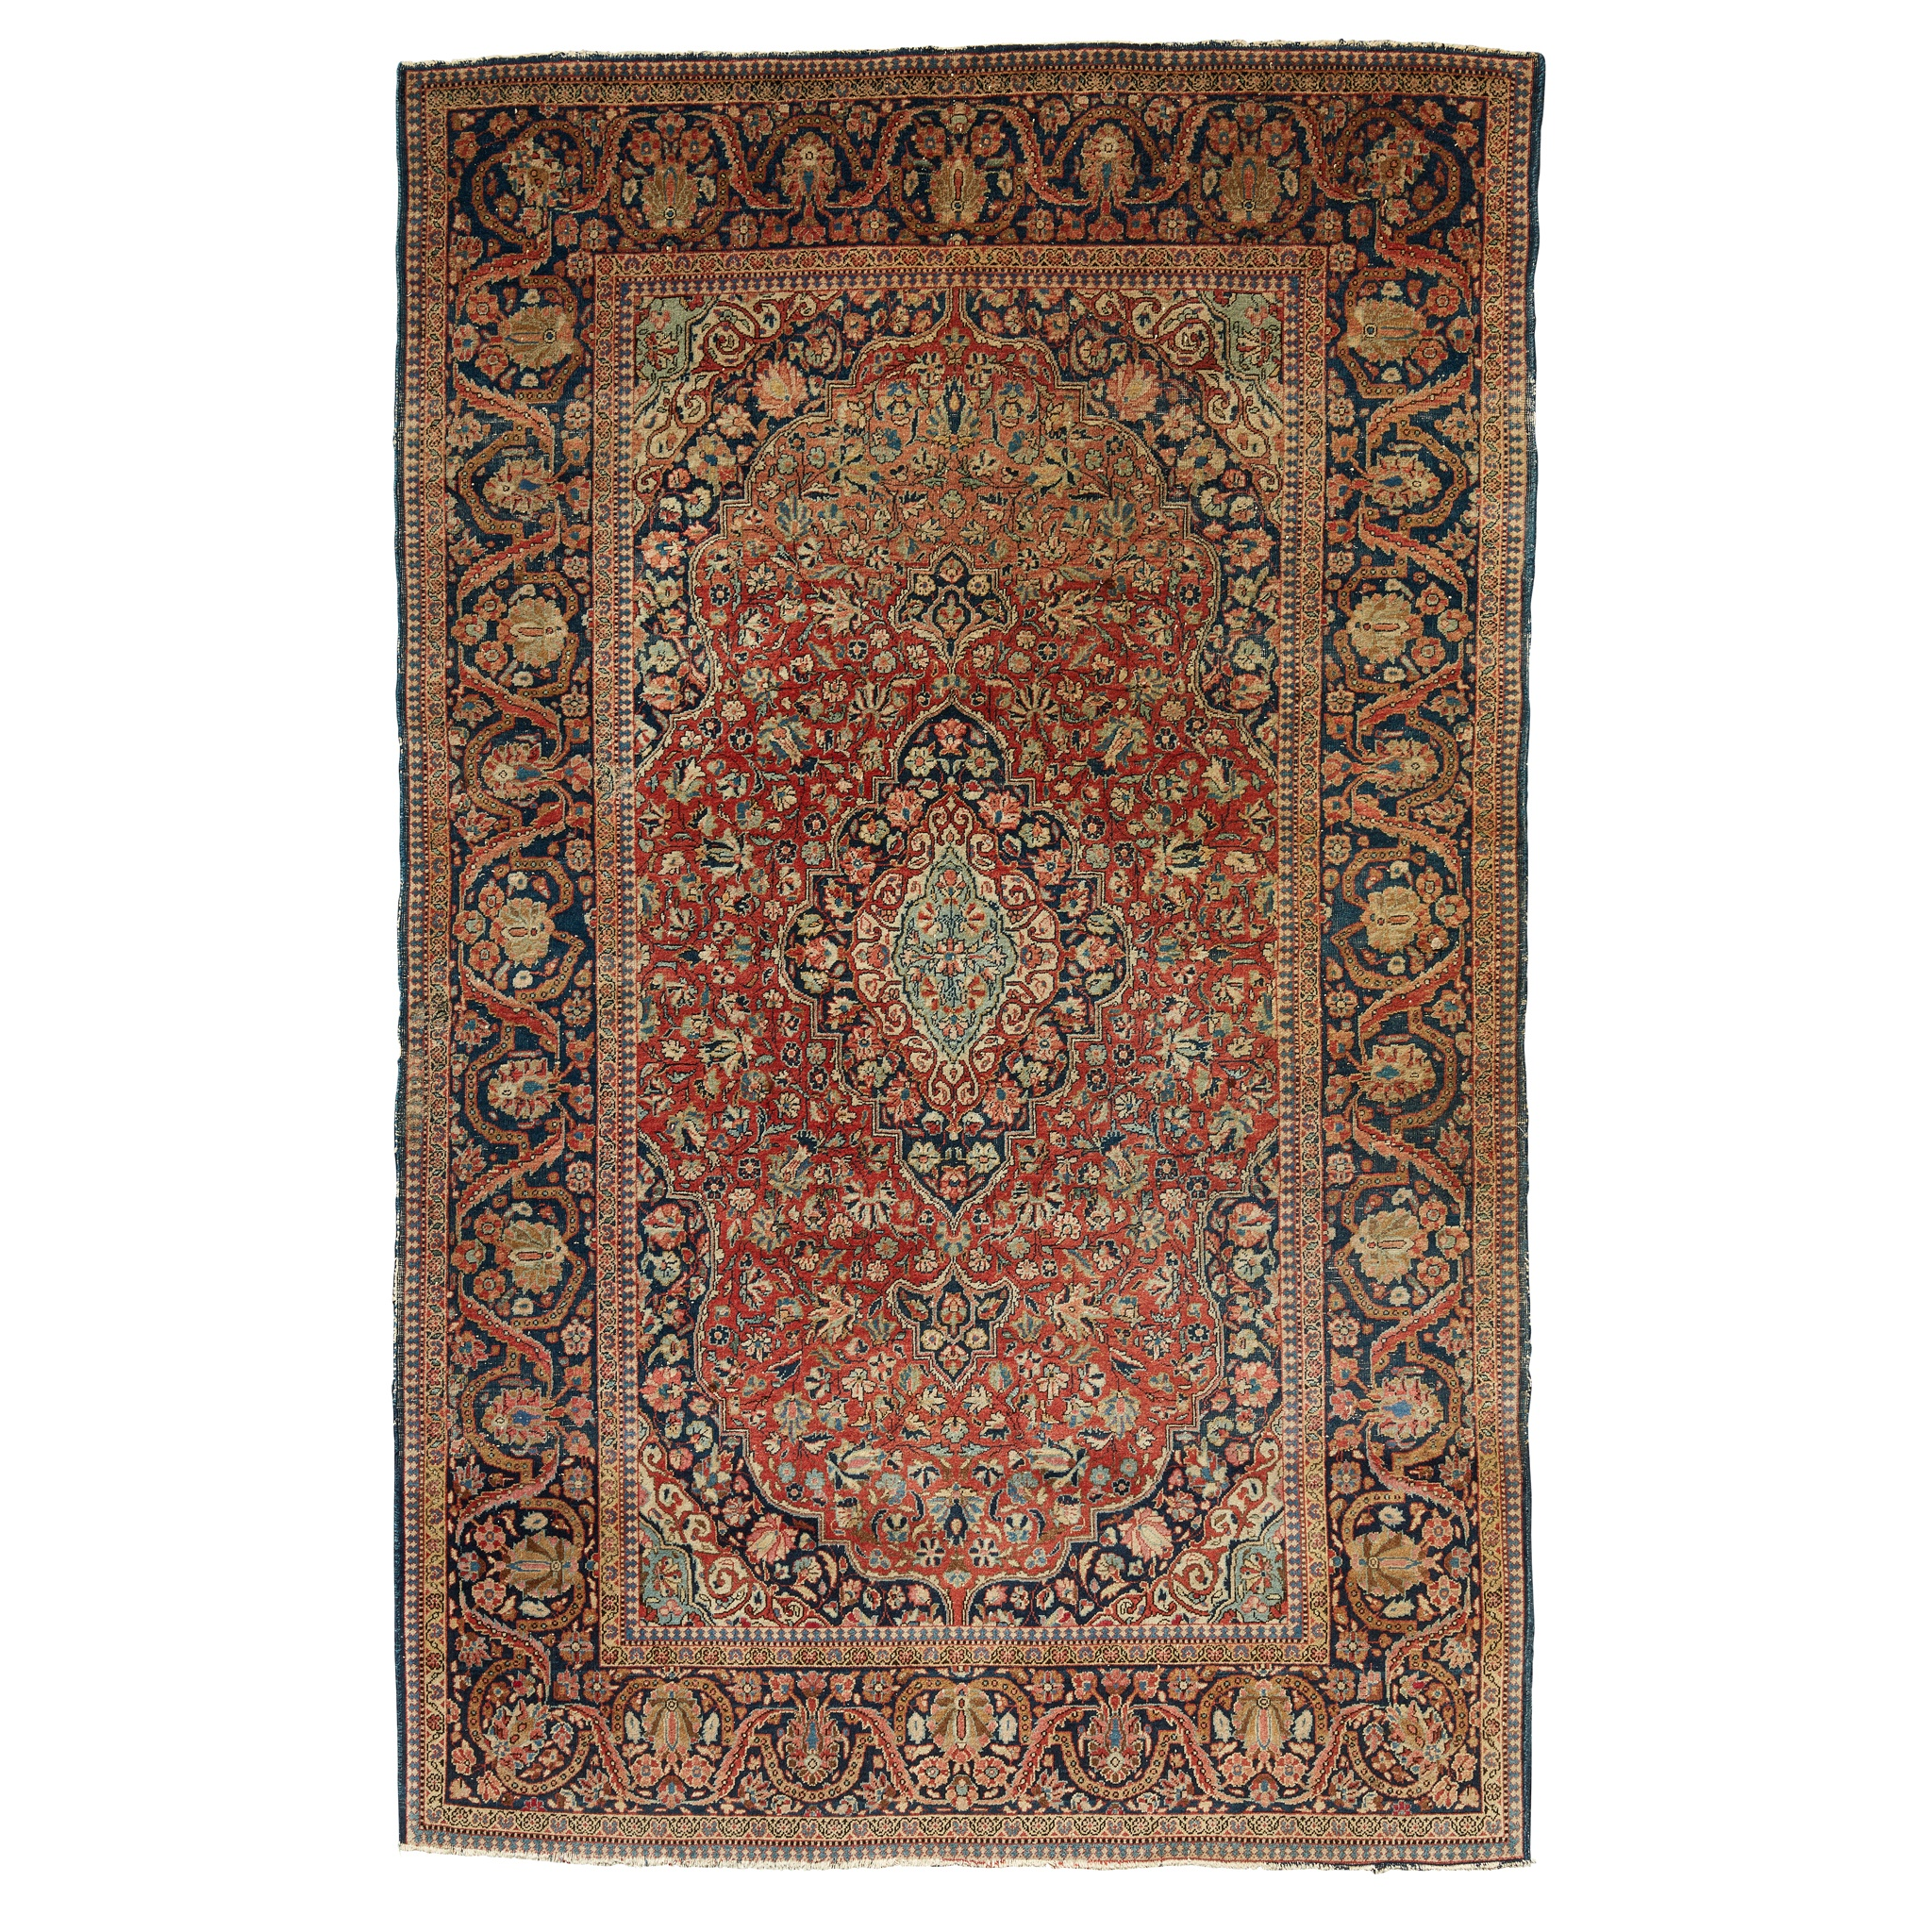 KASHAN RUG CENTRAL PERSIA, LATE 19TH/EARLY 20TH CENTURY